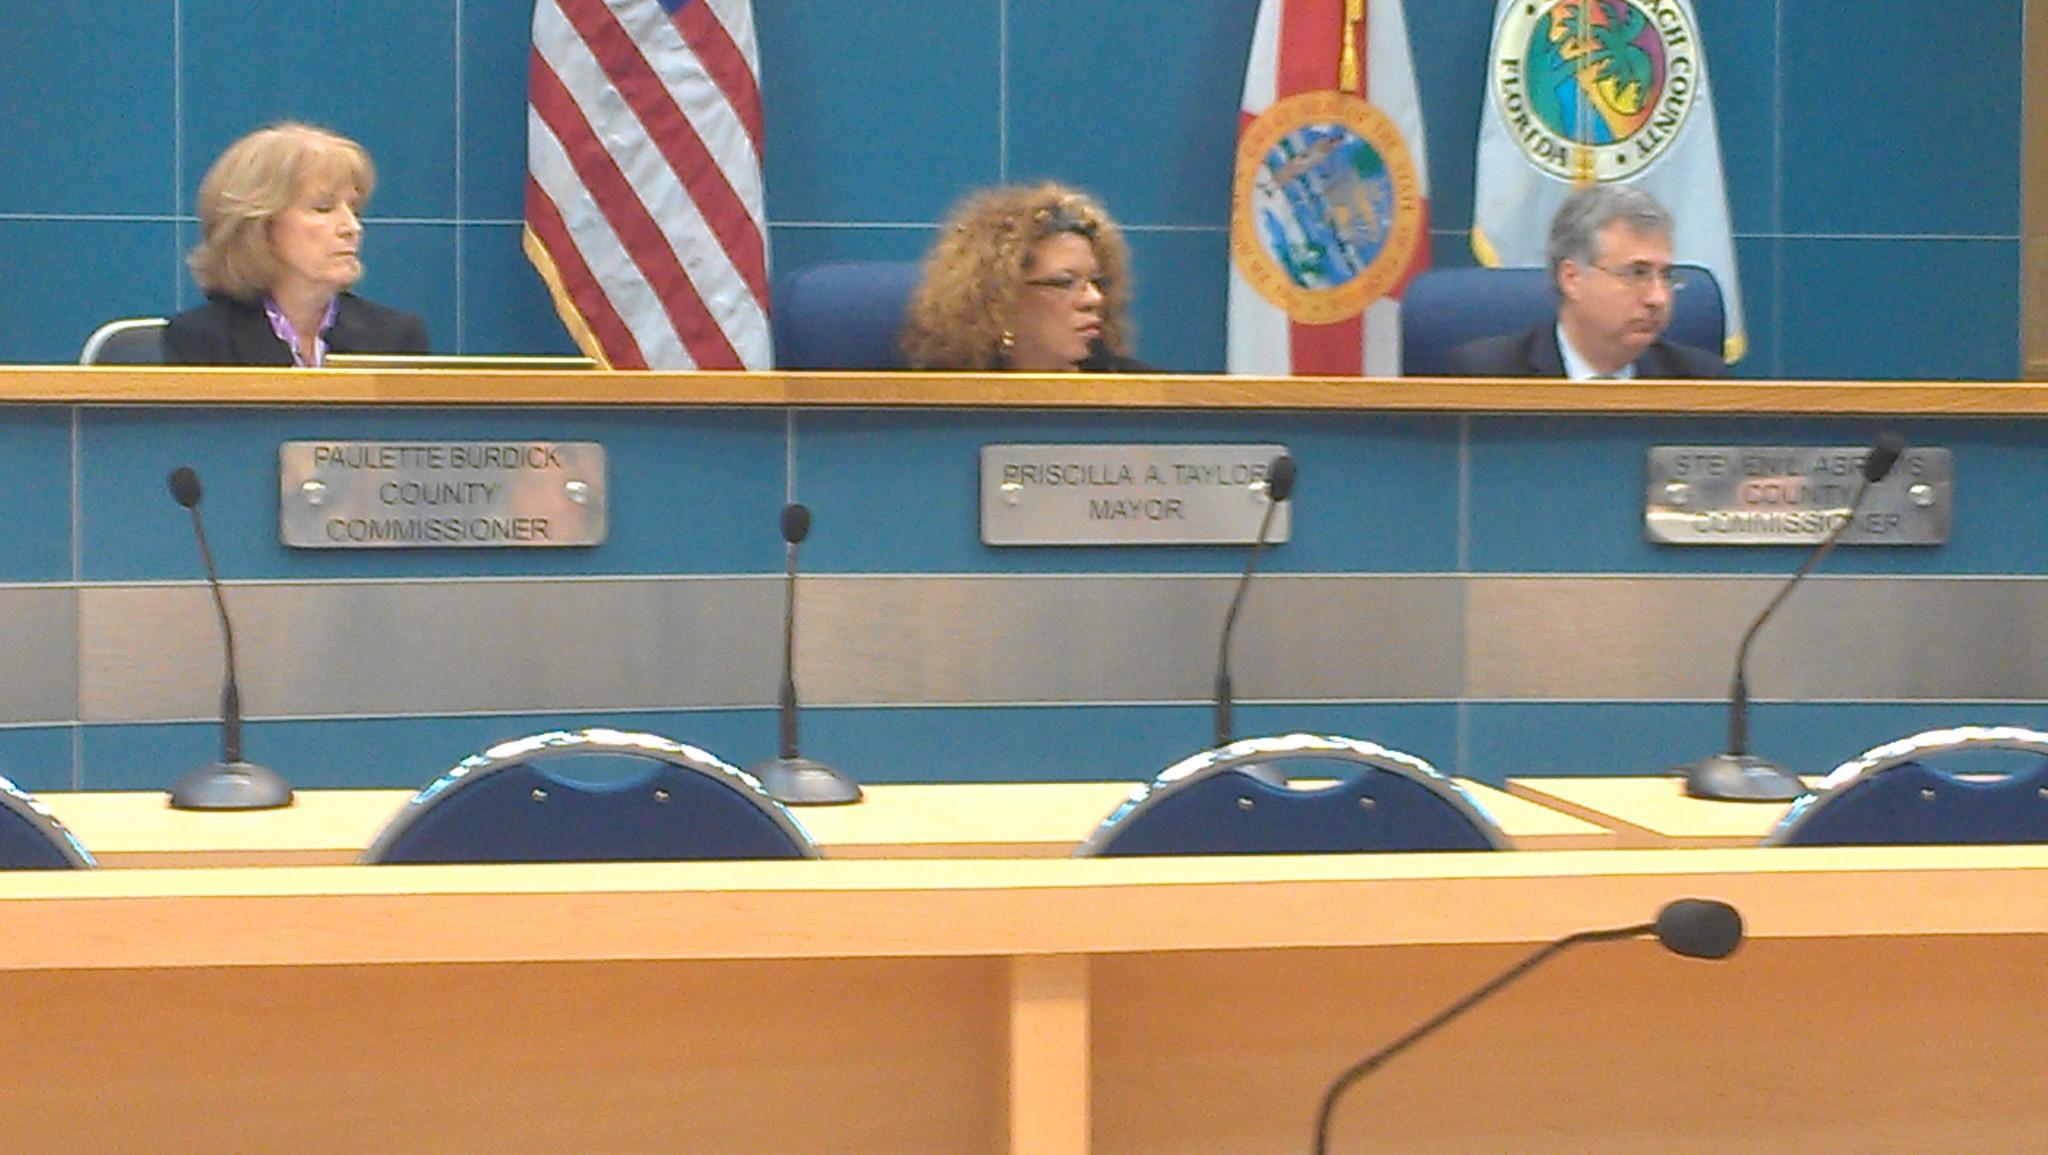 Palm Beach County Mayor Priscilla Taylor launched the effort to hold a Mayor's Ball on March 8 that would raise money for the county's homeless resource center.